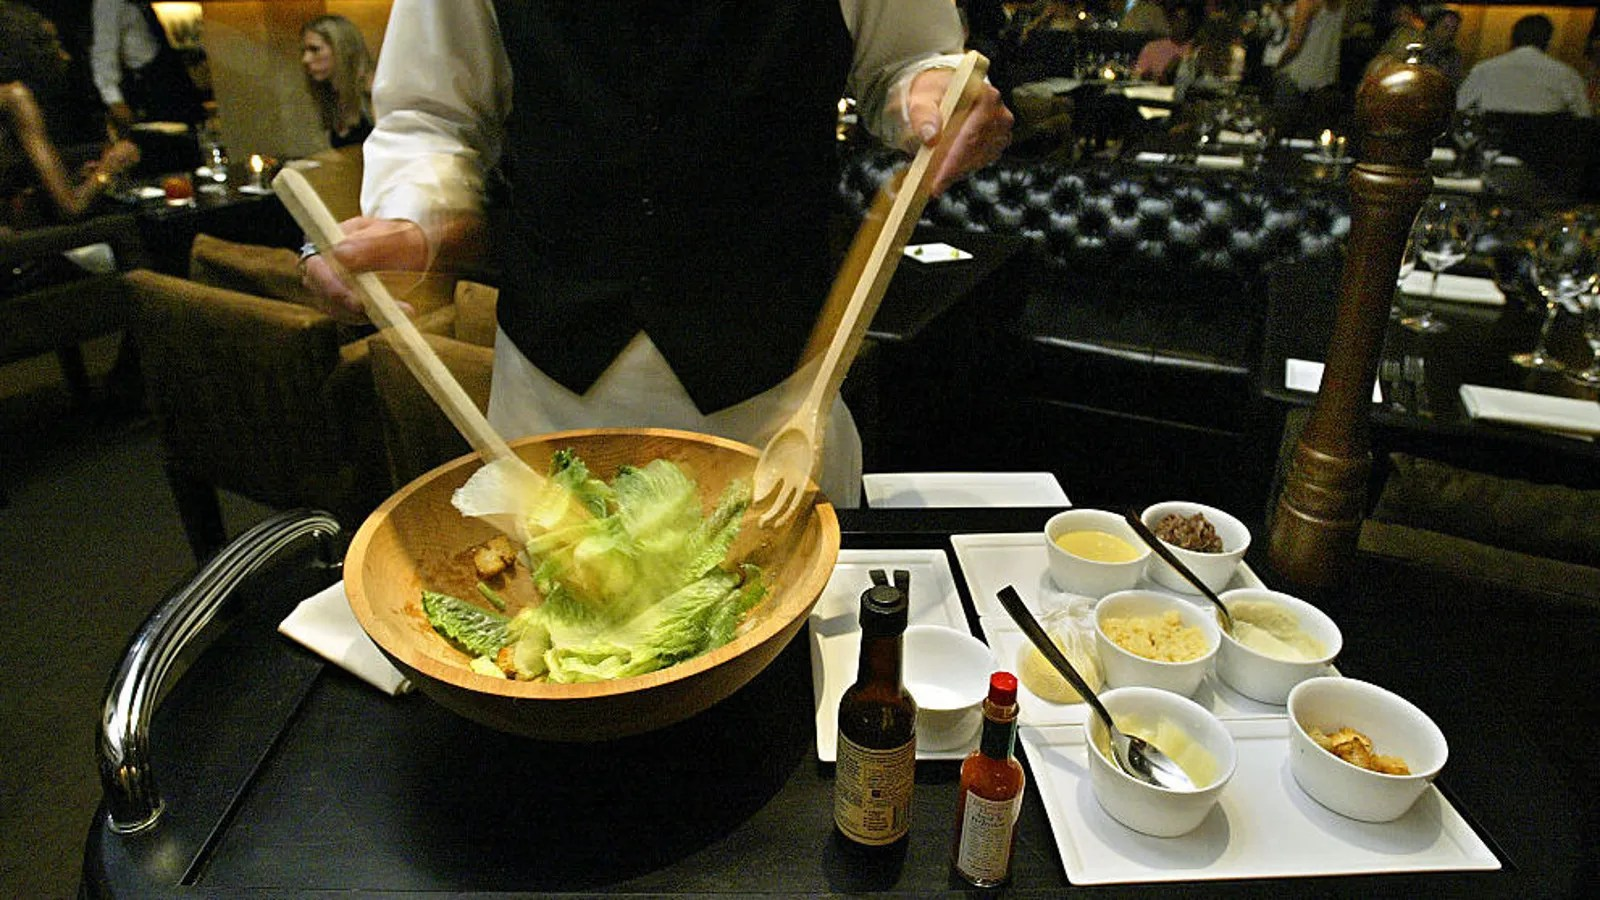 Classic Table Side Dishes Restaurant Dishes Prepared Tableside Ranked By Absurdity